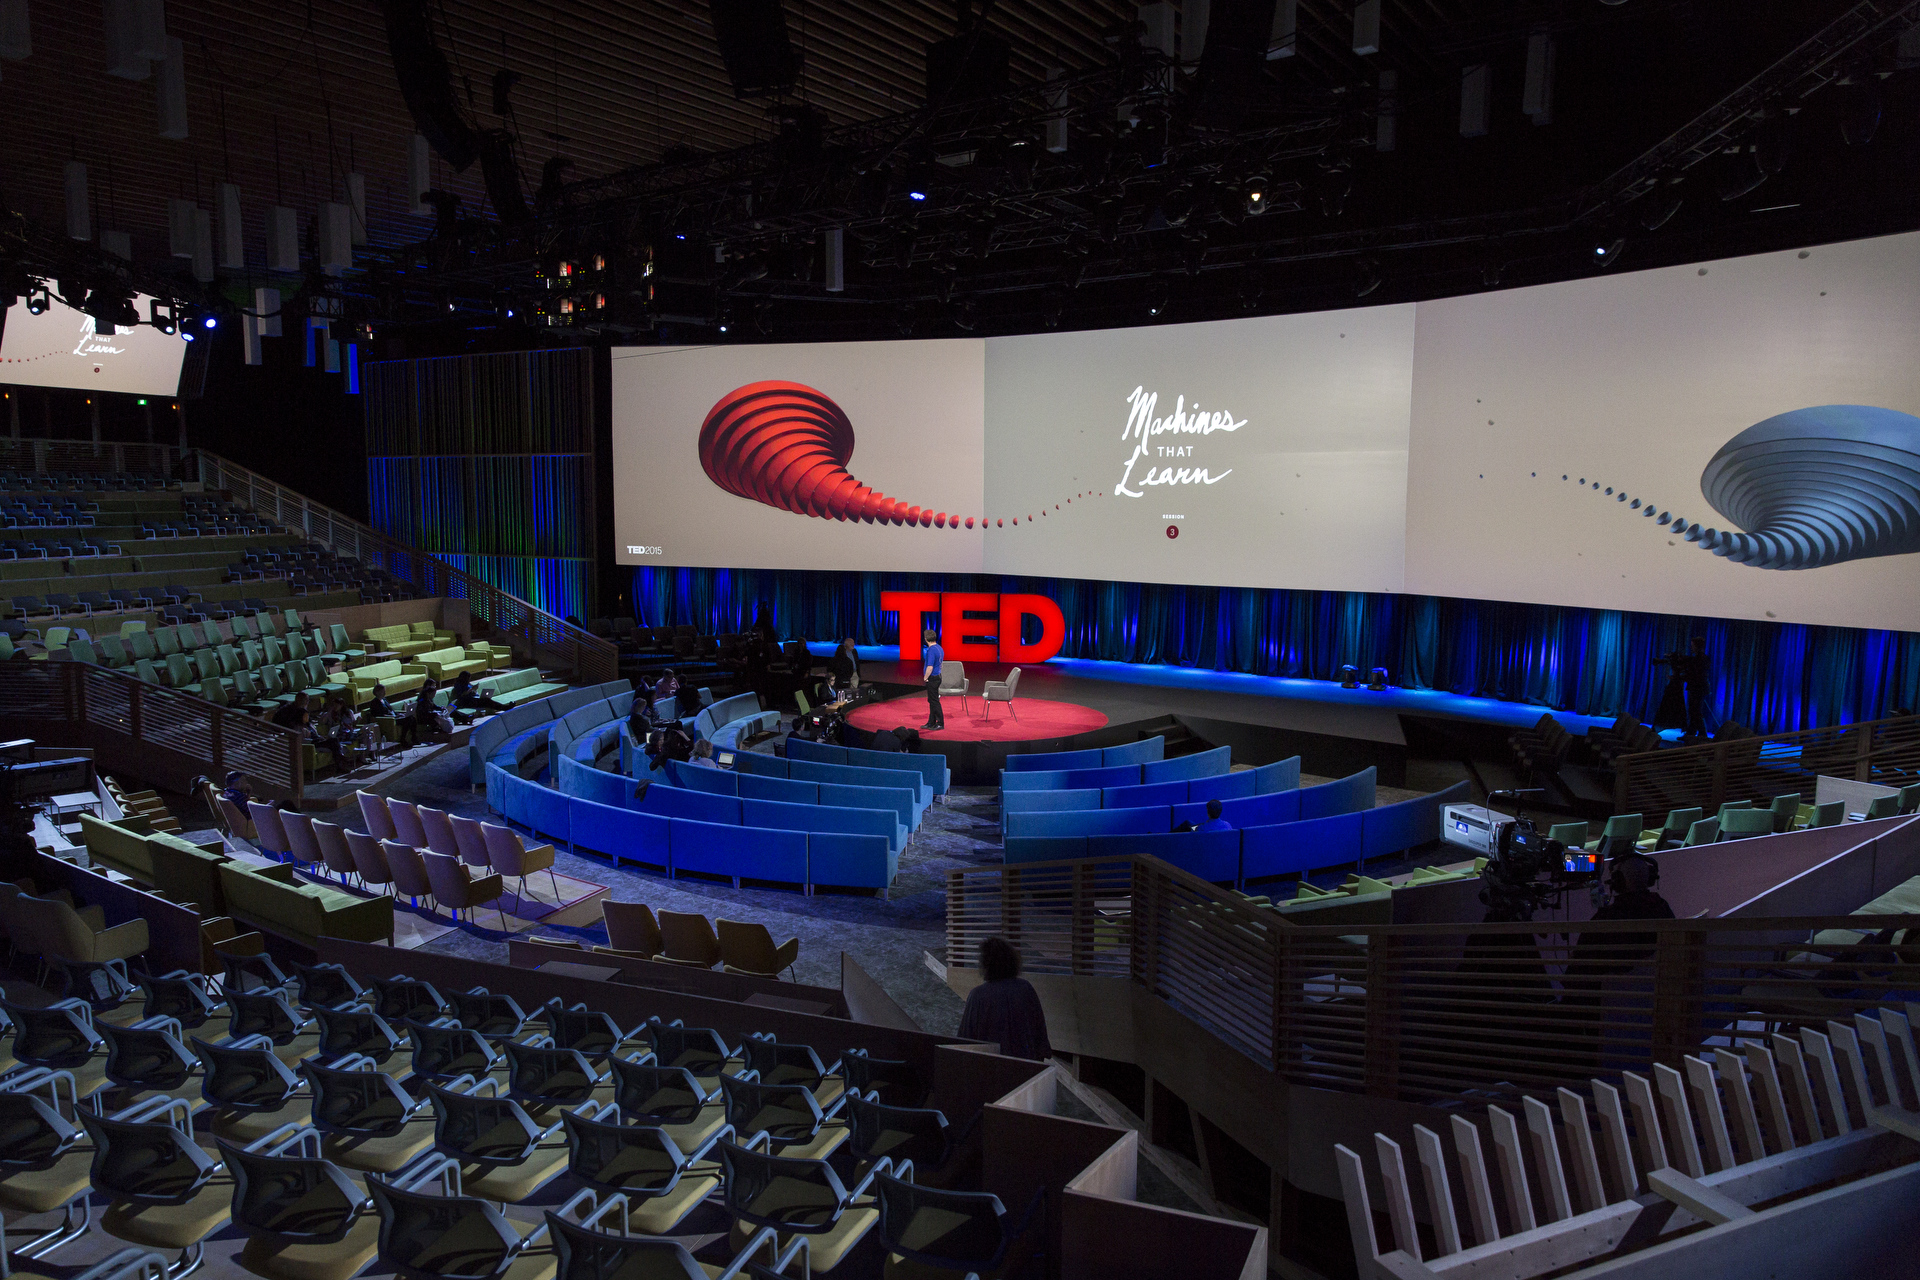 Inside the theater at TED2015 - Truth and Dare, Vancouver Convention Center, Vancouver, Canada. Photo: Bret Hartman/TED